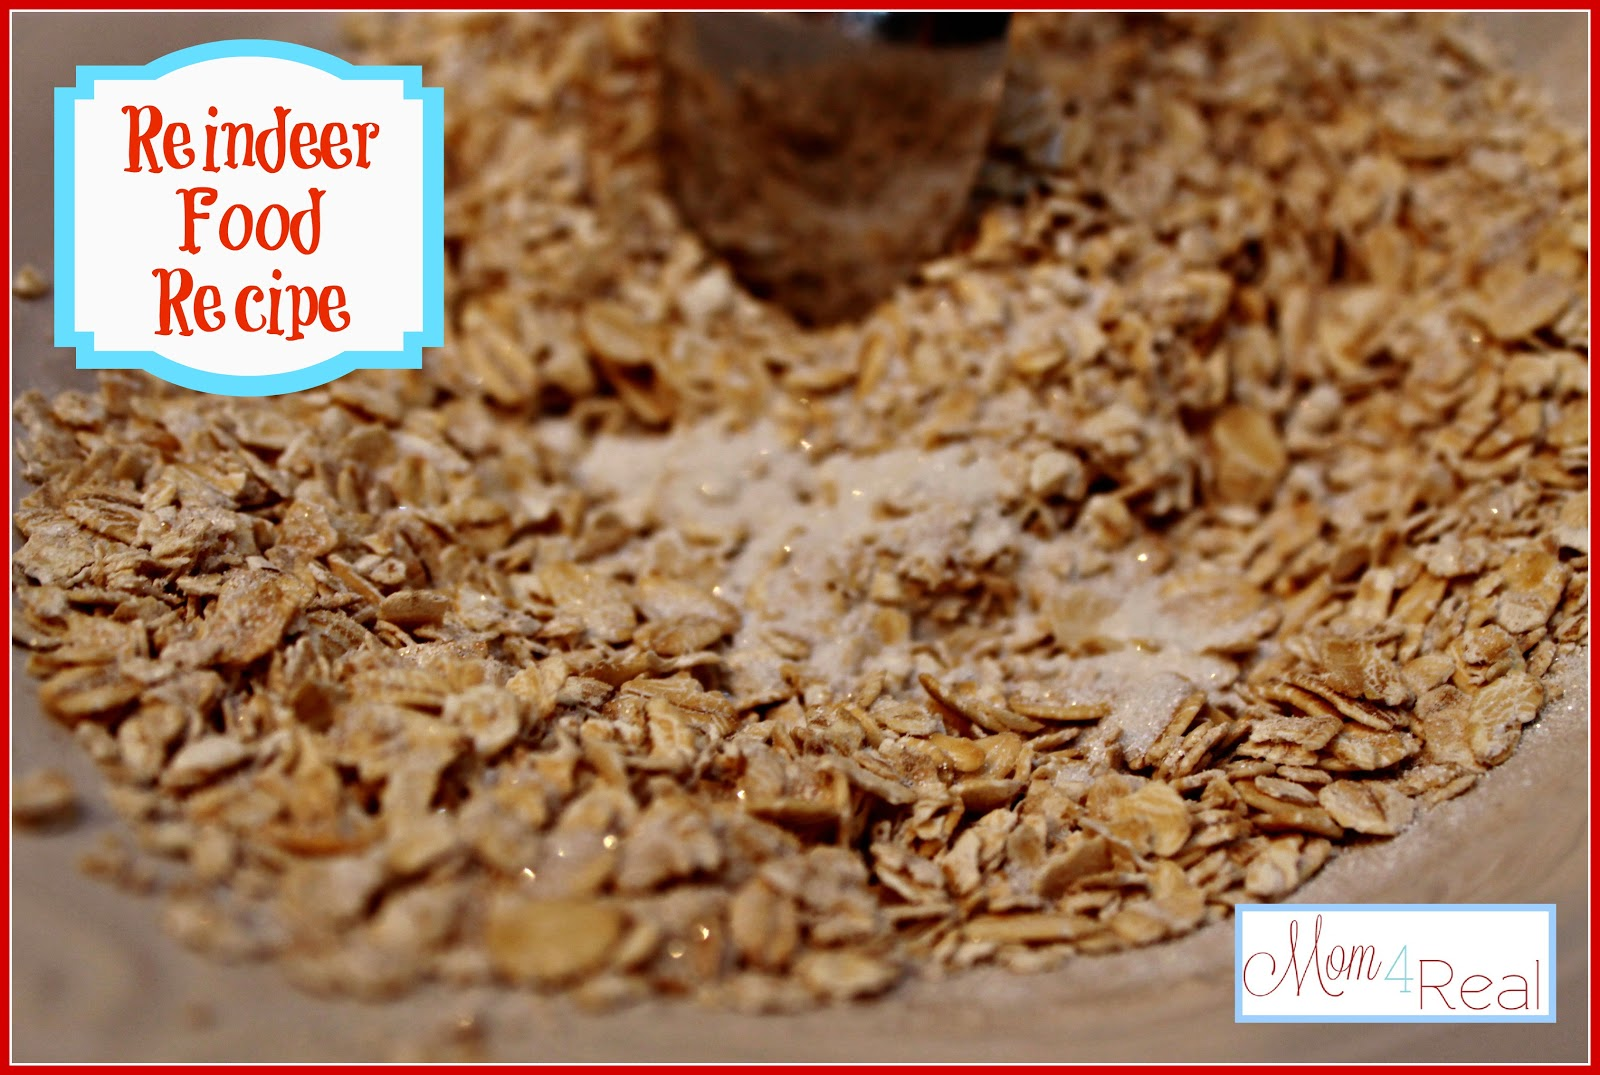 Reindeer Food Recipe With Glitter